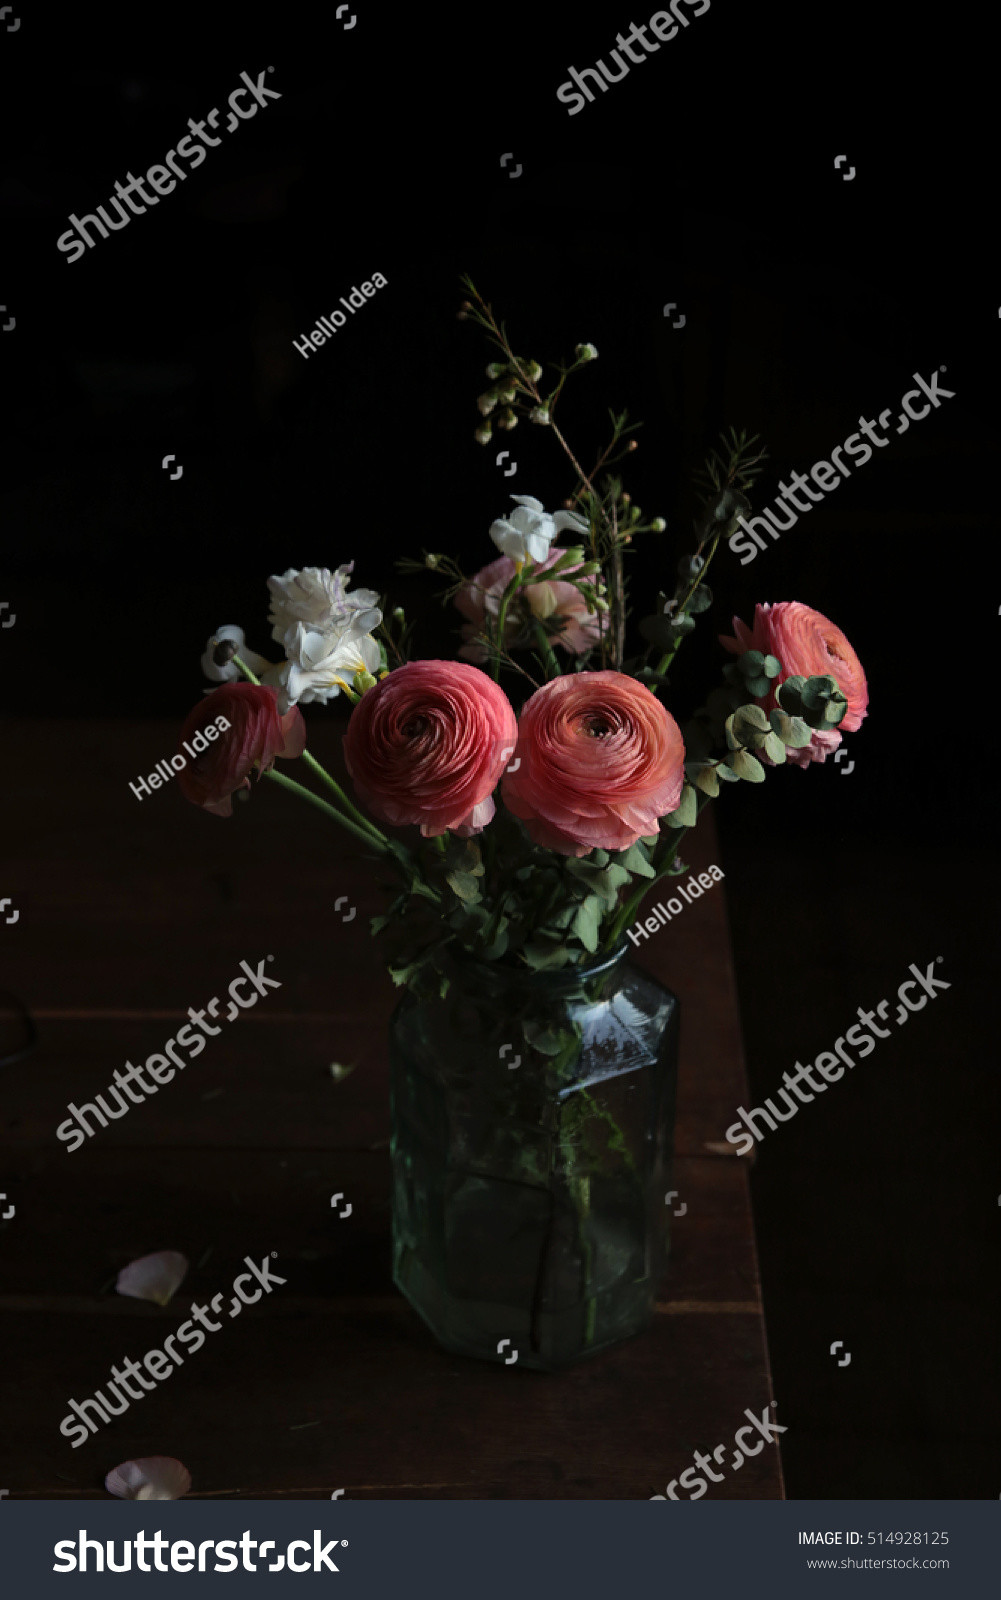 flower arrangements in cylinder vases of flower bouquet glass vase on vintage stock photo edit now regarding flower bouquet in a glass vase on vintage table with black moody background